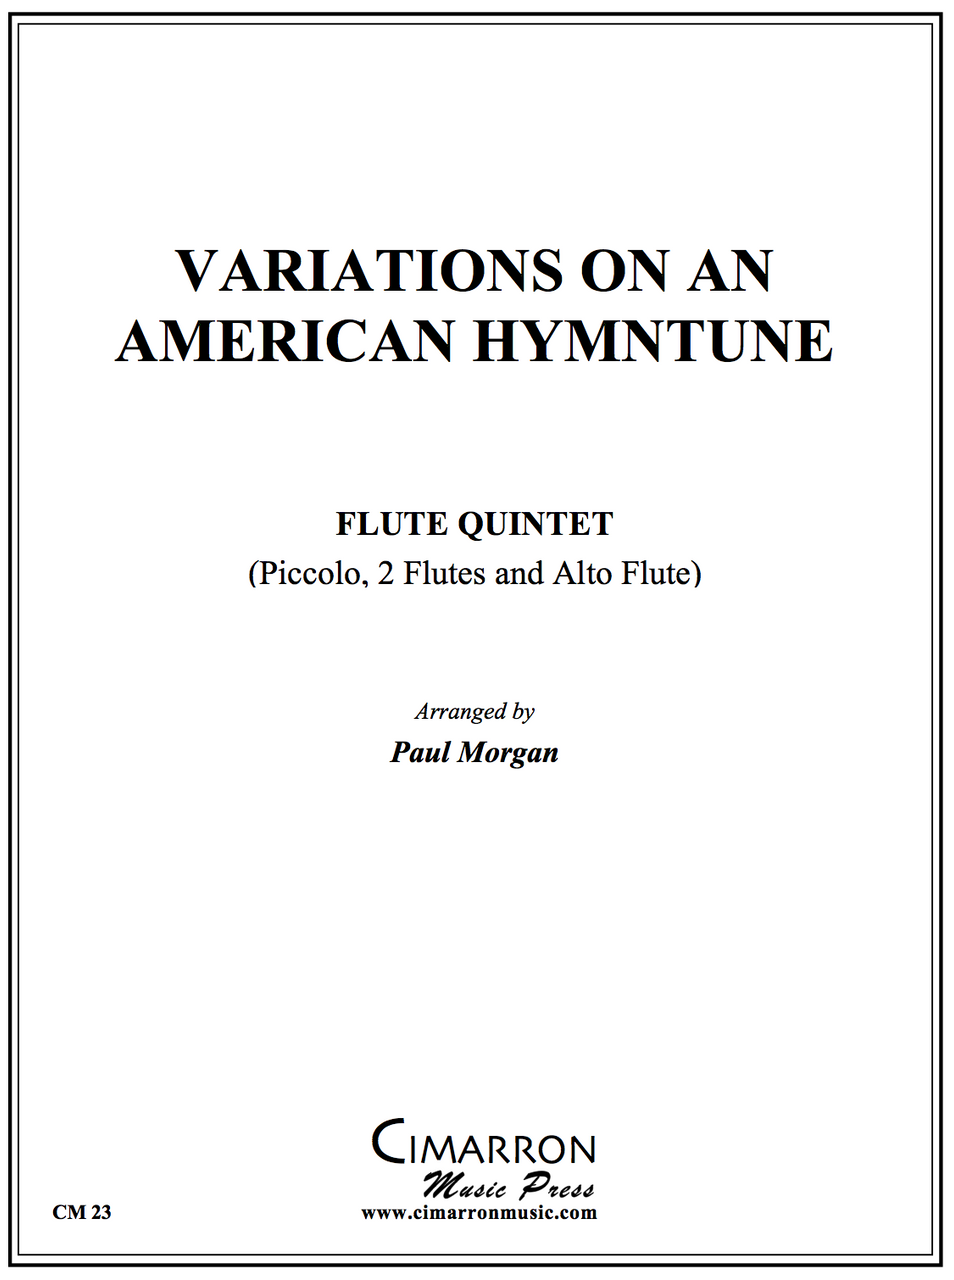 Morgan - Variations on a American Hymn Tune - Flute Quintet